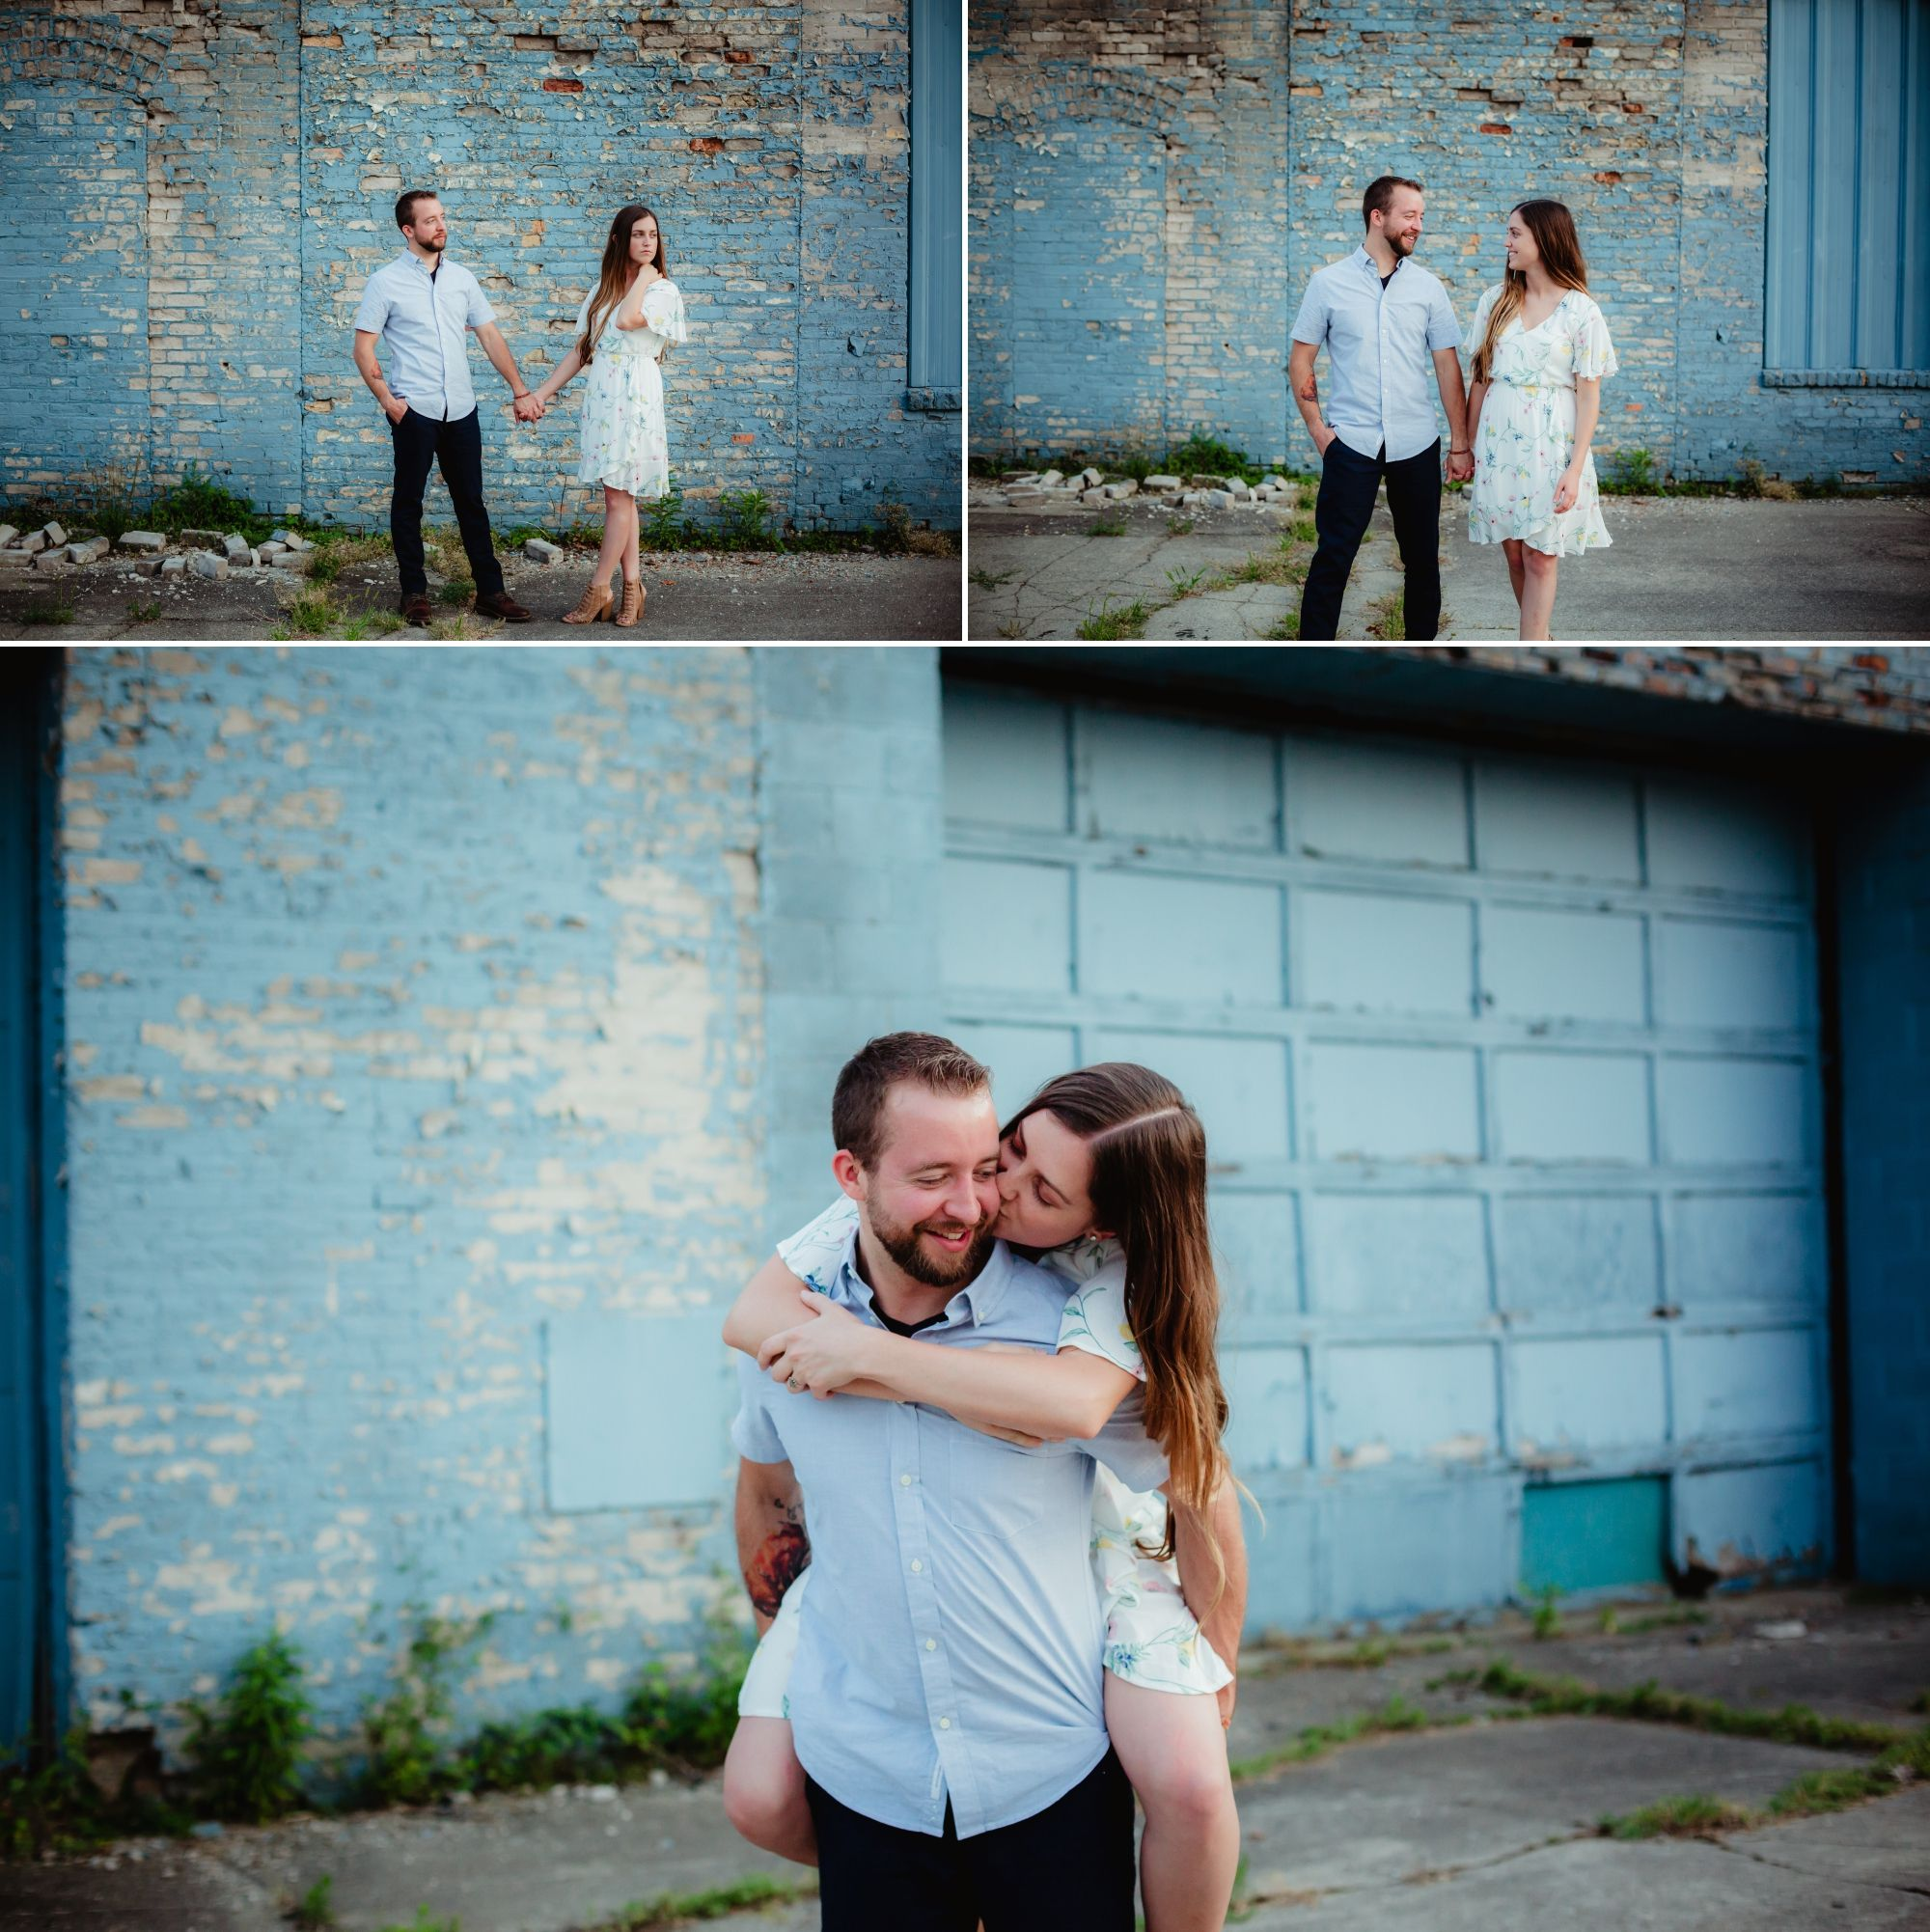 Couple holding hands in front of a blue brick building. Then woman on a man's back kissing his cheek.